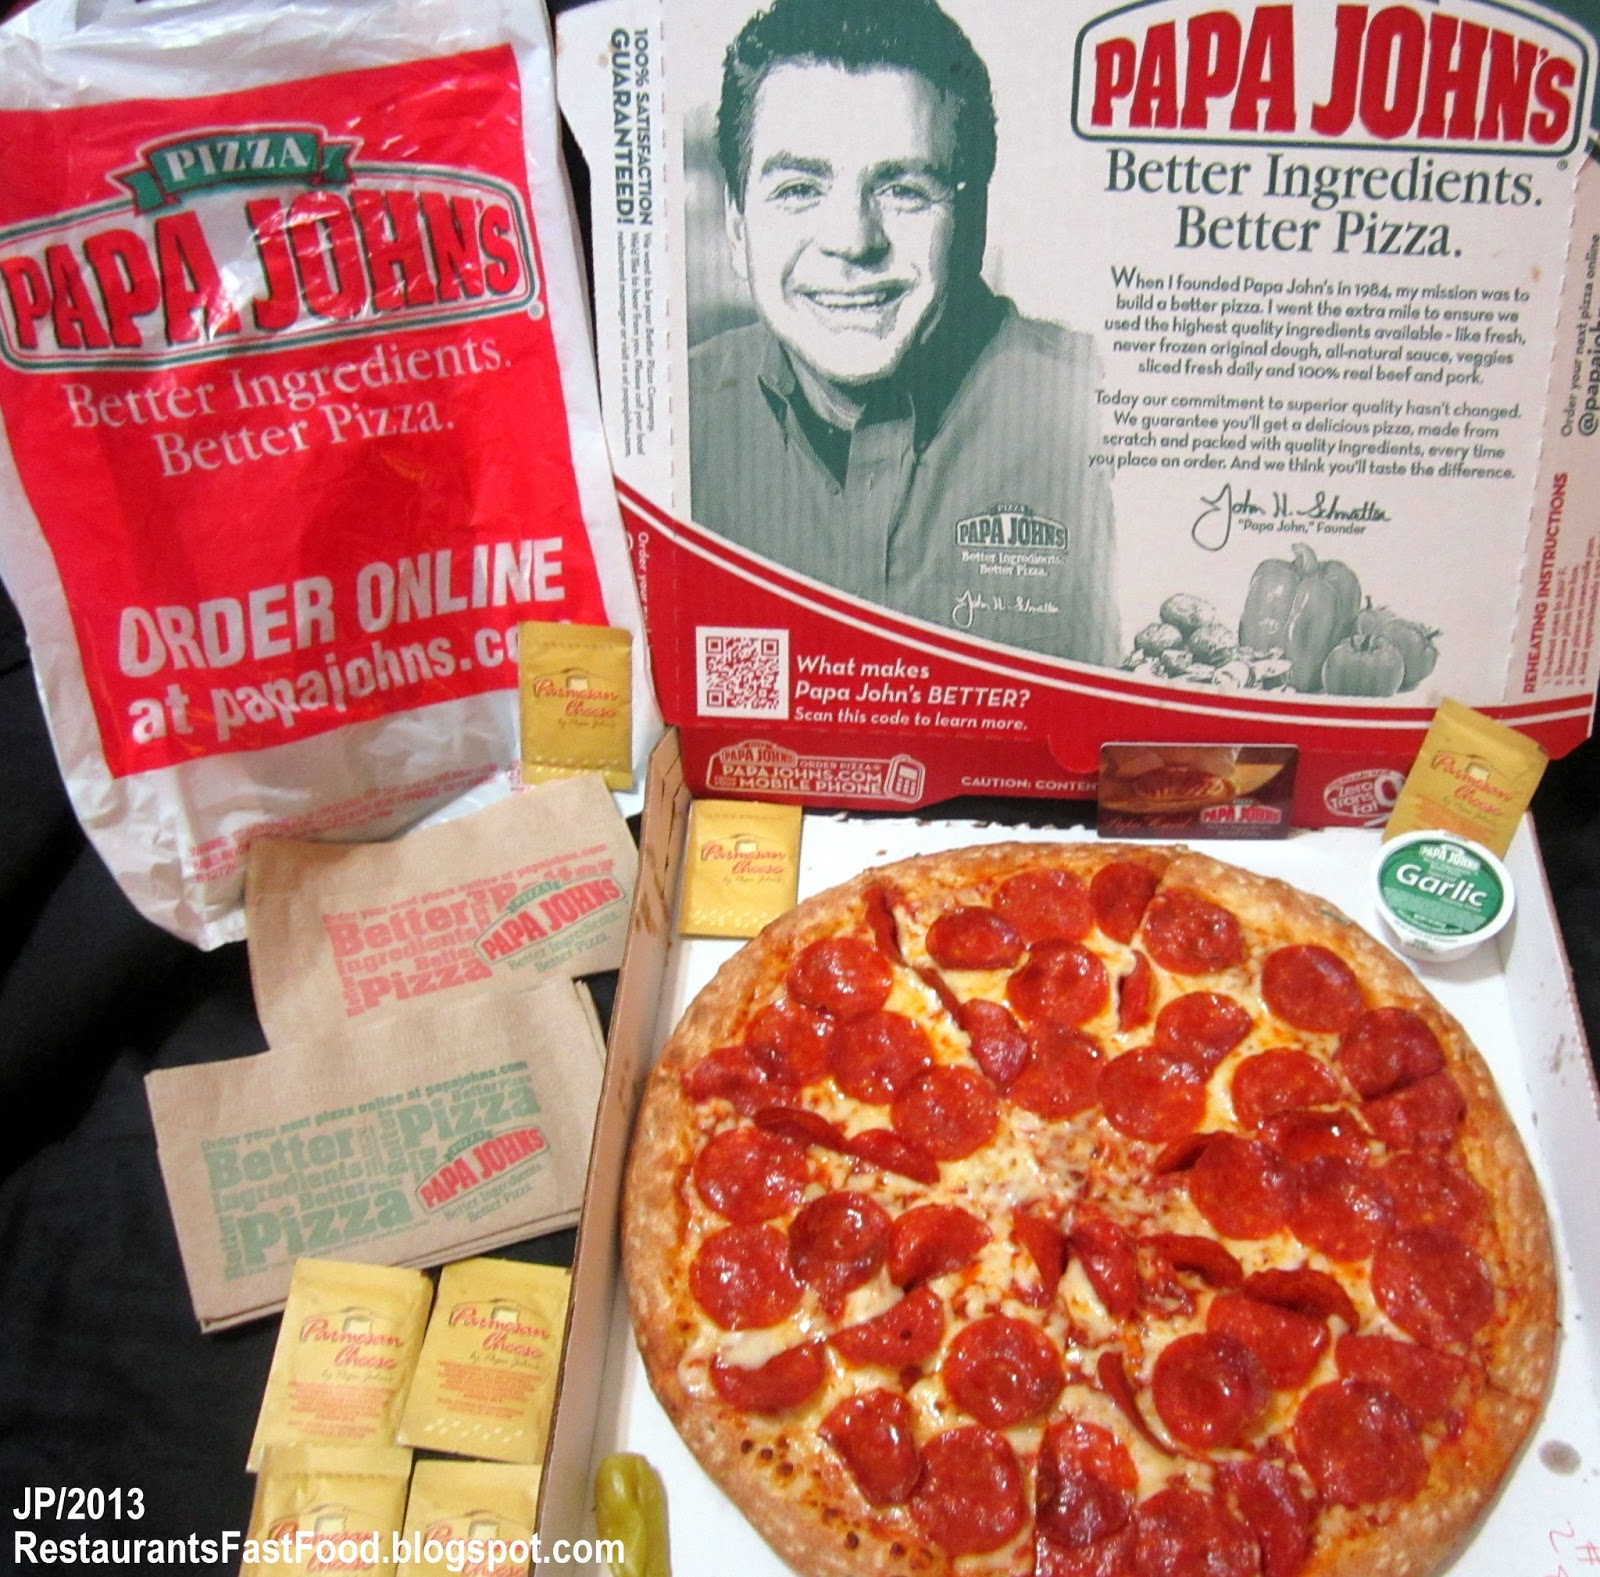 Next time you place an order be sure to use a Papa John's promo code for discounts and special offers. For more savings, check out our Papa John's gift card deals. Savings Tips: Rewards Program: Pizza lovers can indulge their cravings while saving a few dollars by joining the Papa John's reward program.